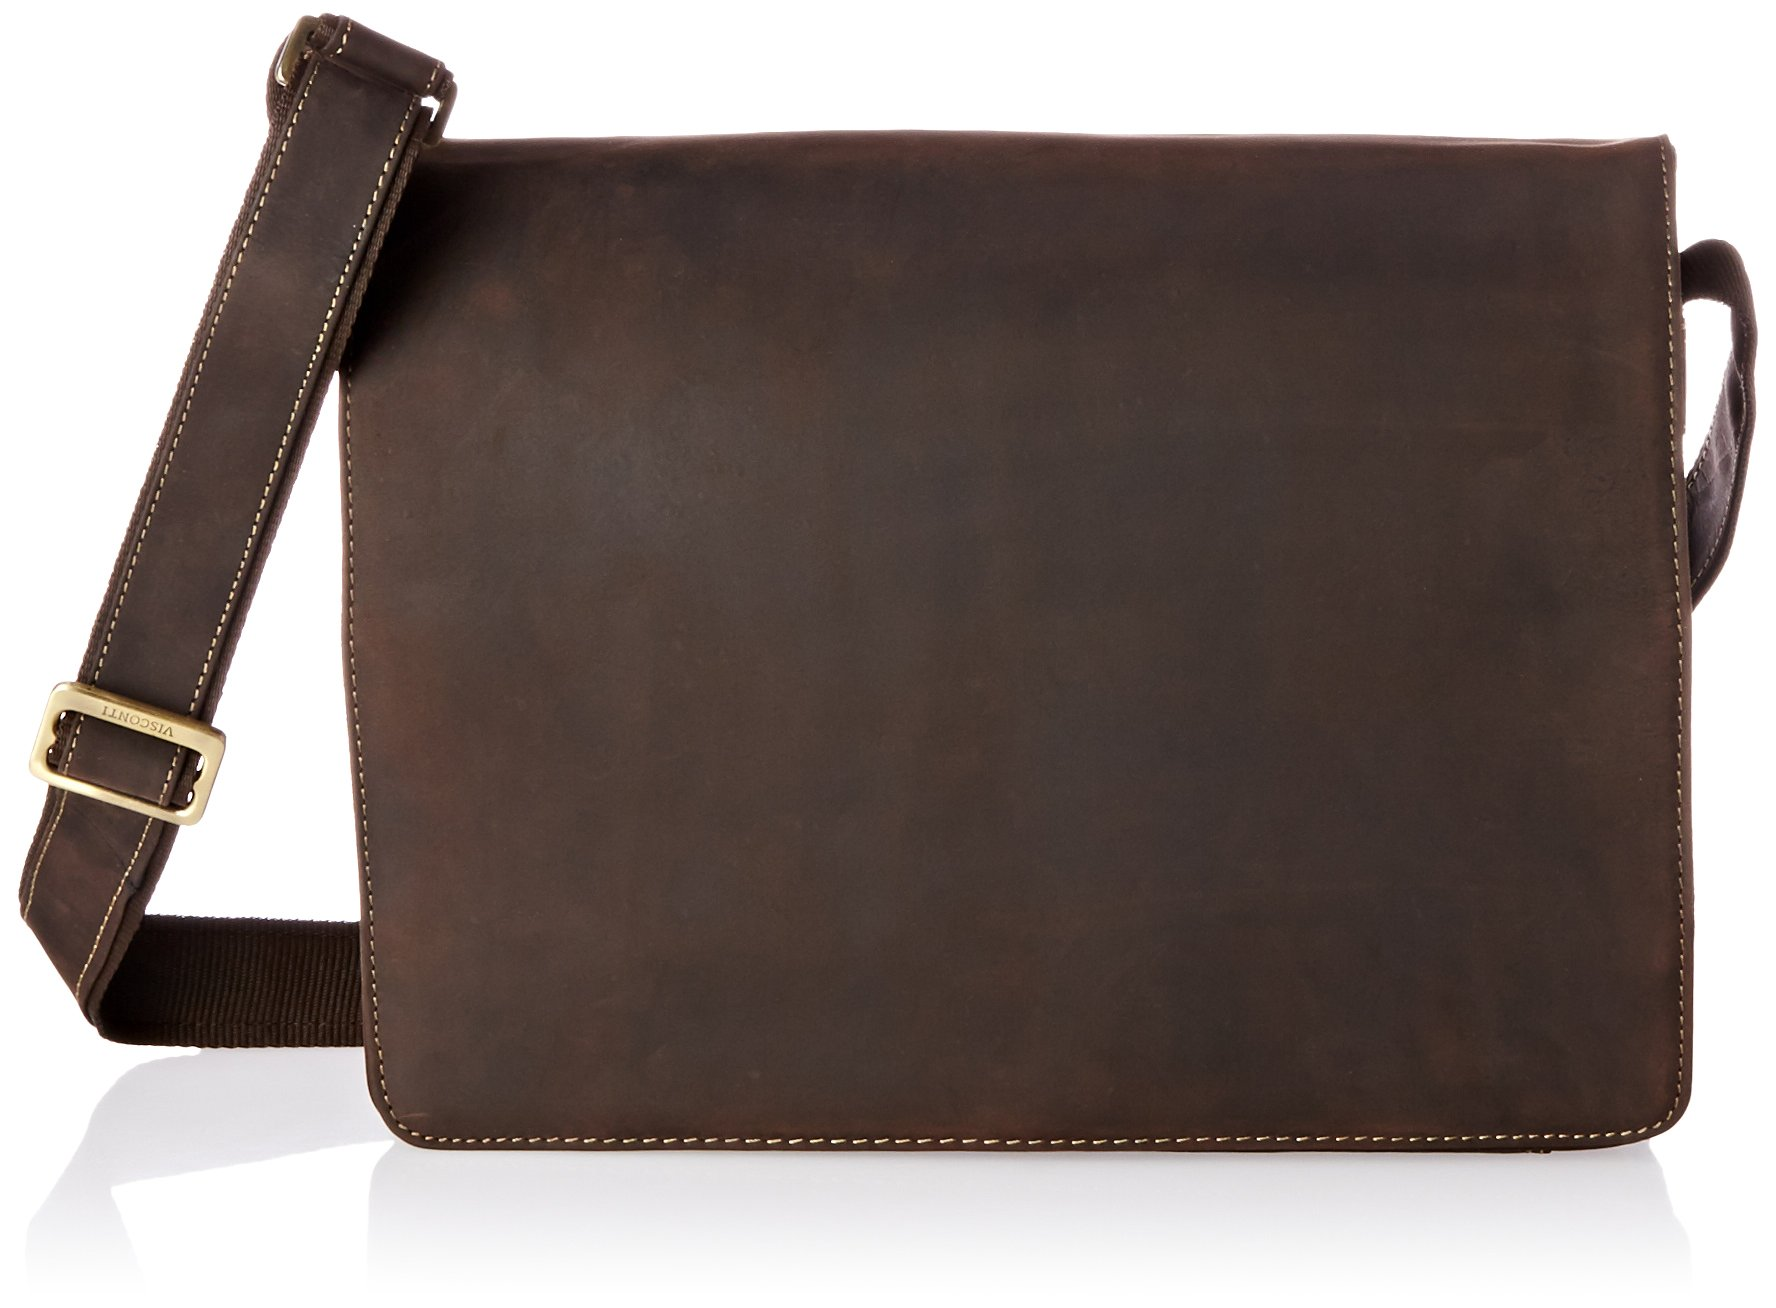 Visconti Visconti Leather Distressed Messenger Bag Harvard Collection, Mocha, One Size